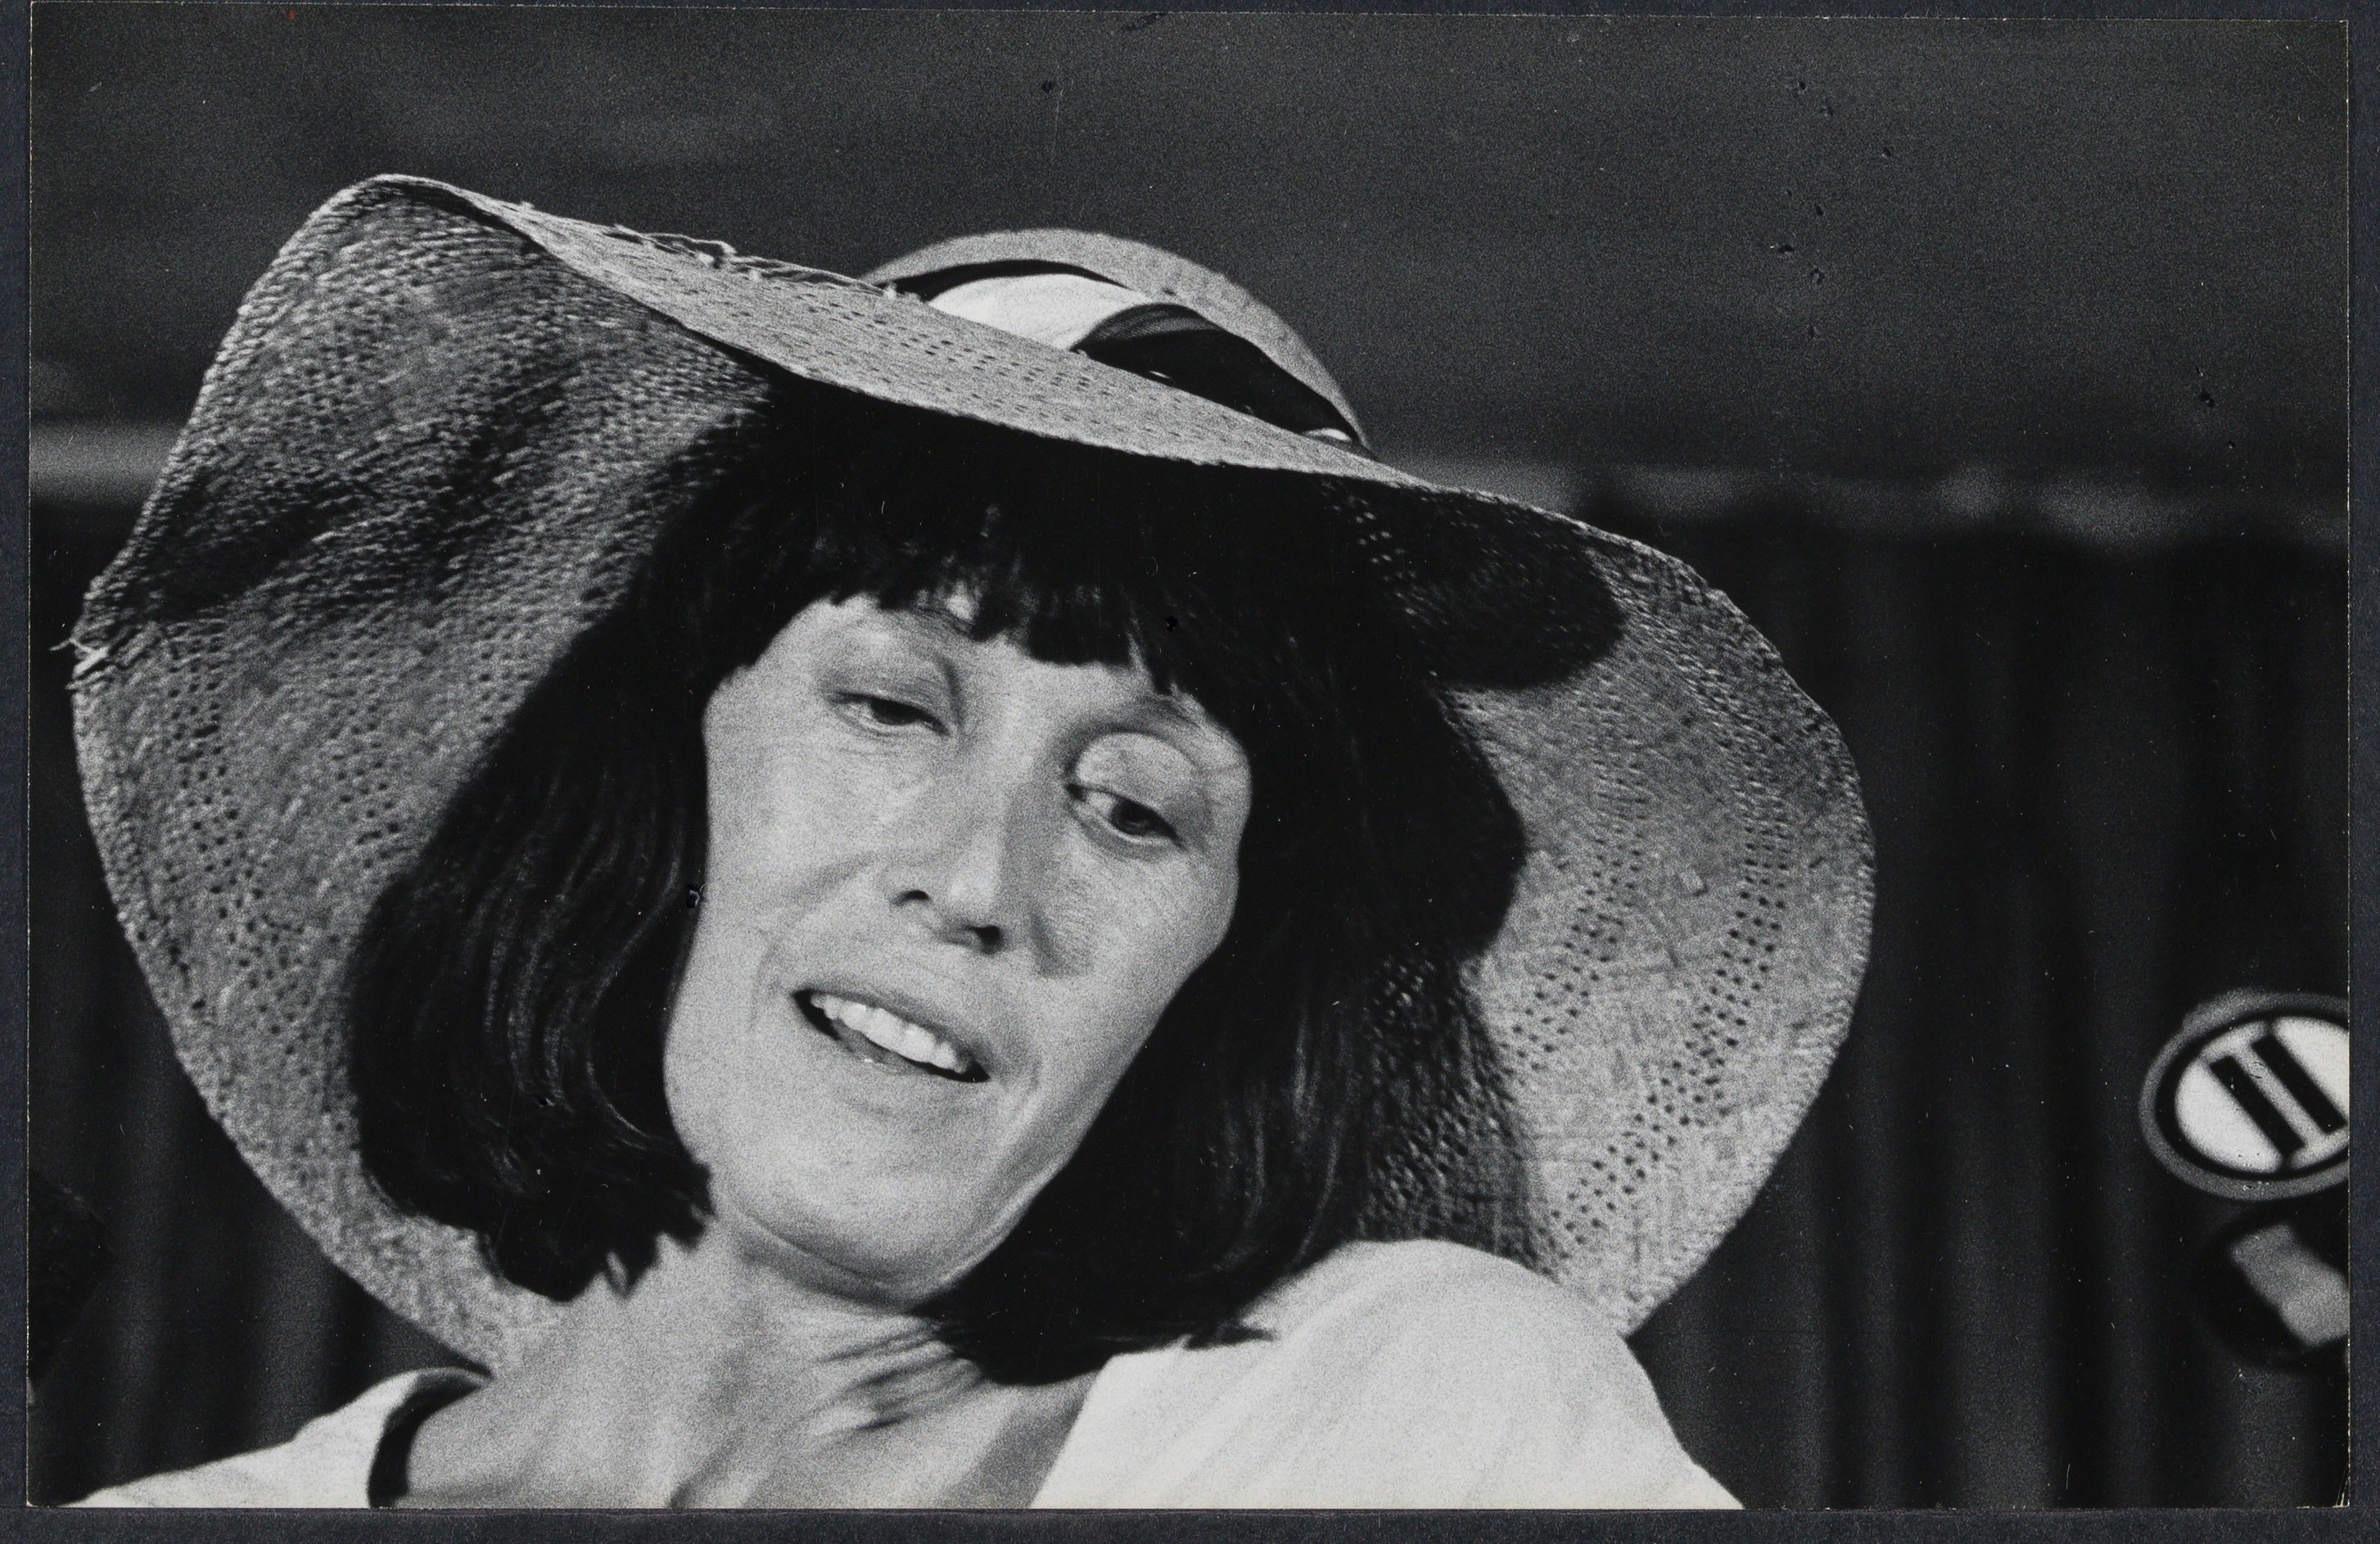 Margo St. James, President of the San Francisco Prostitute Union